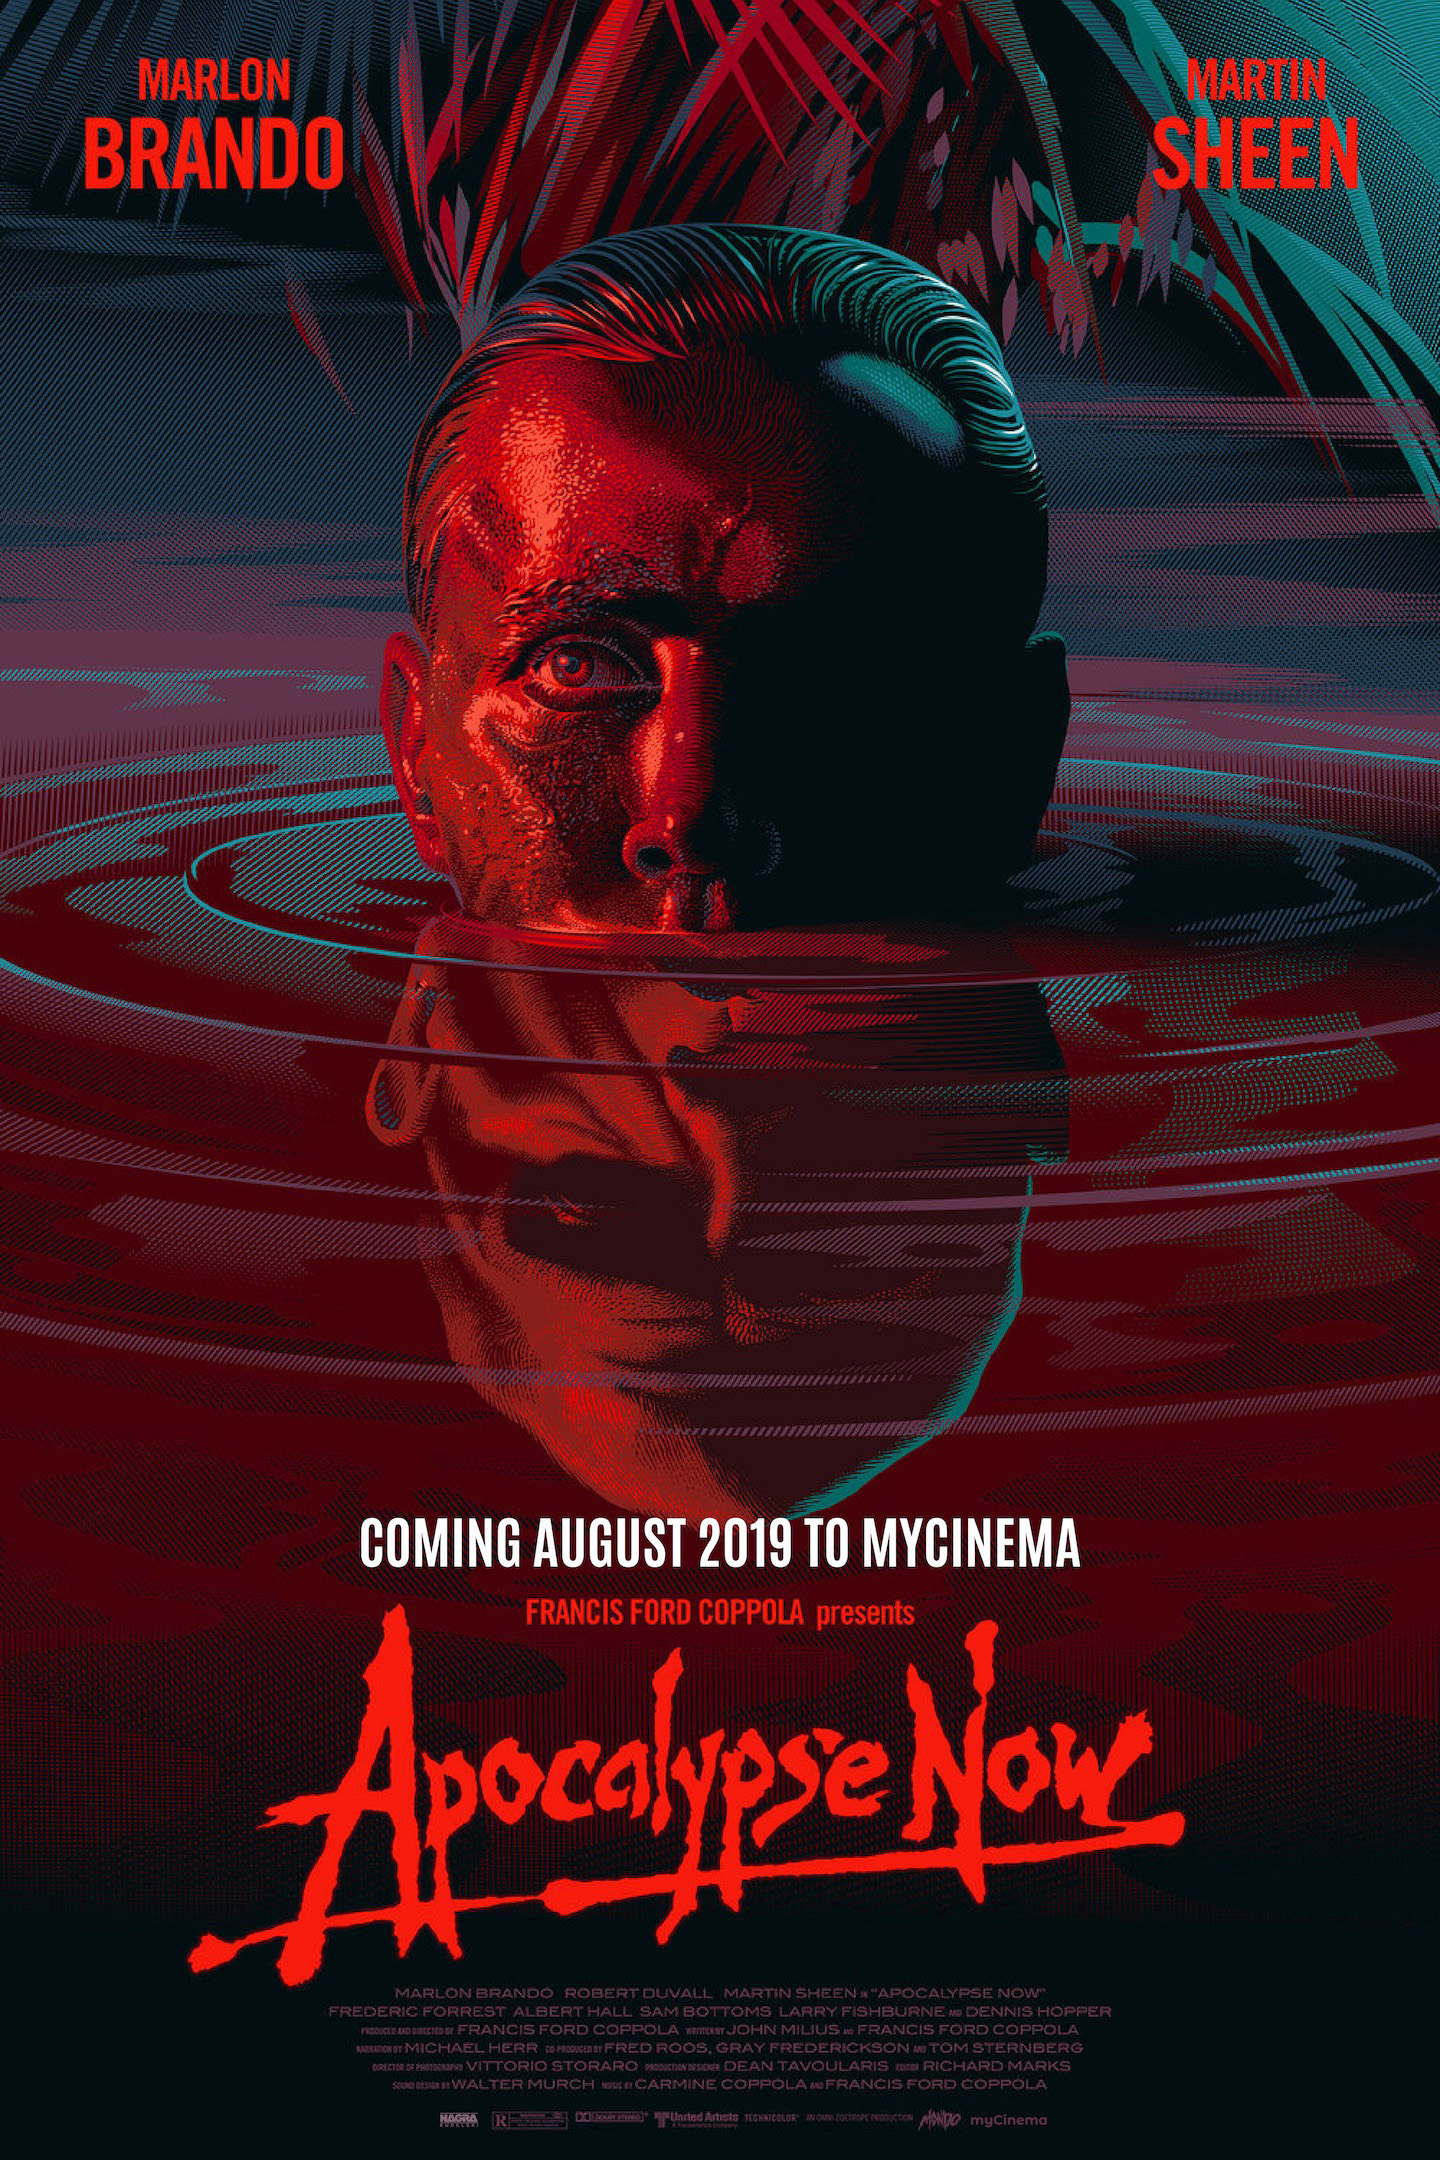 Apocalypse Now Final Cut (40th Anniversary) Poster